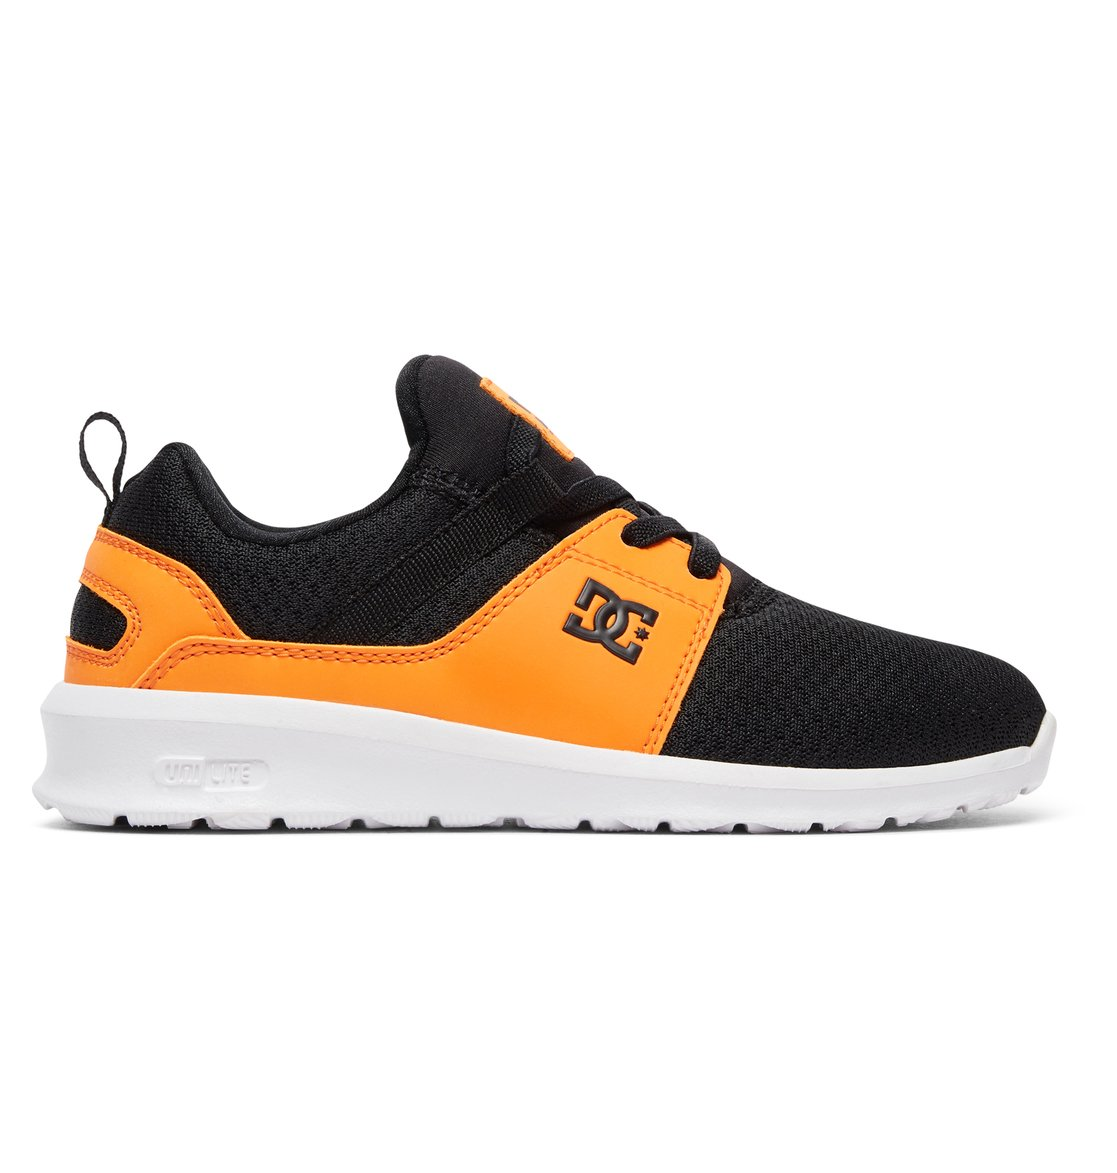 DC Shoes Heathrow - Shoes - Zapatos - Mujer - EU 37 tJHlB5vY